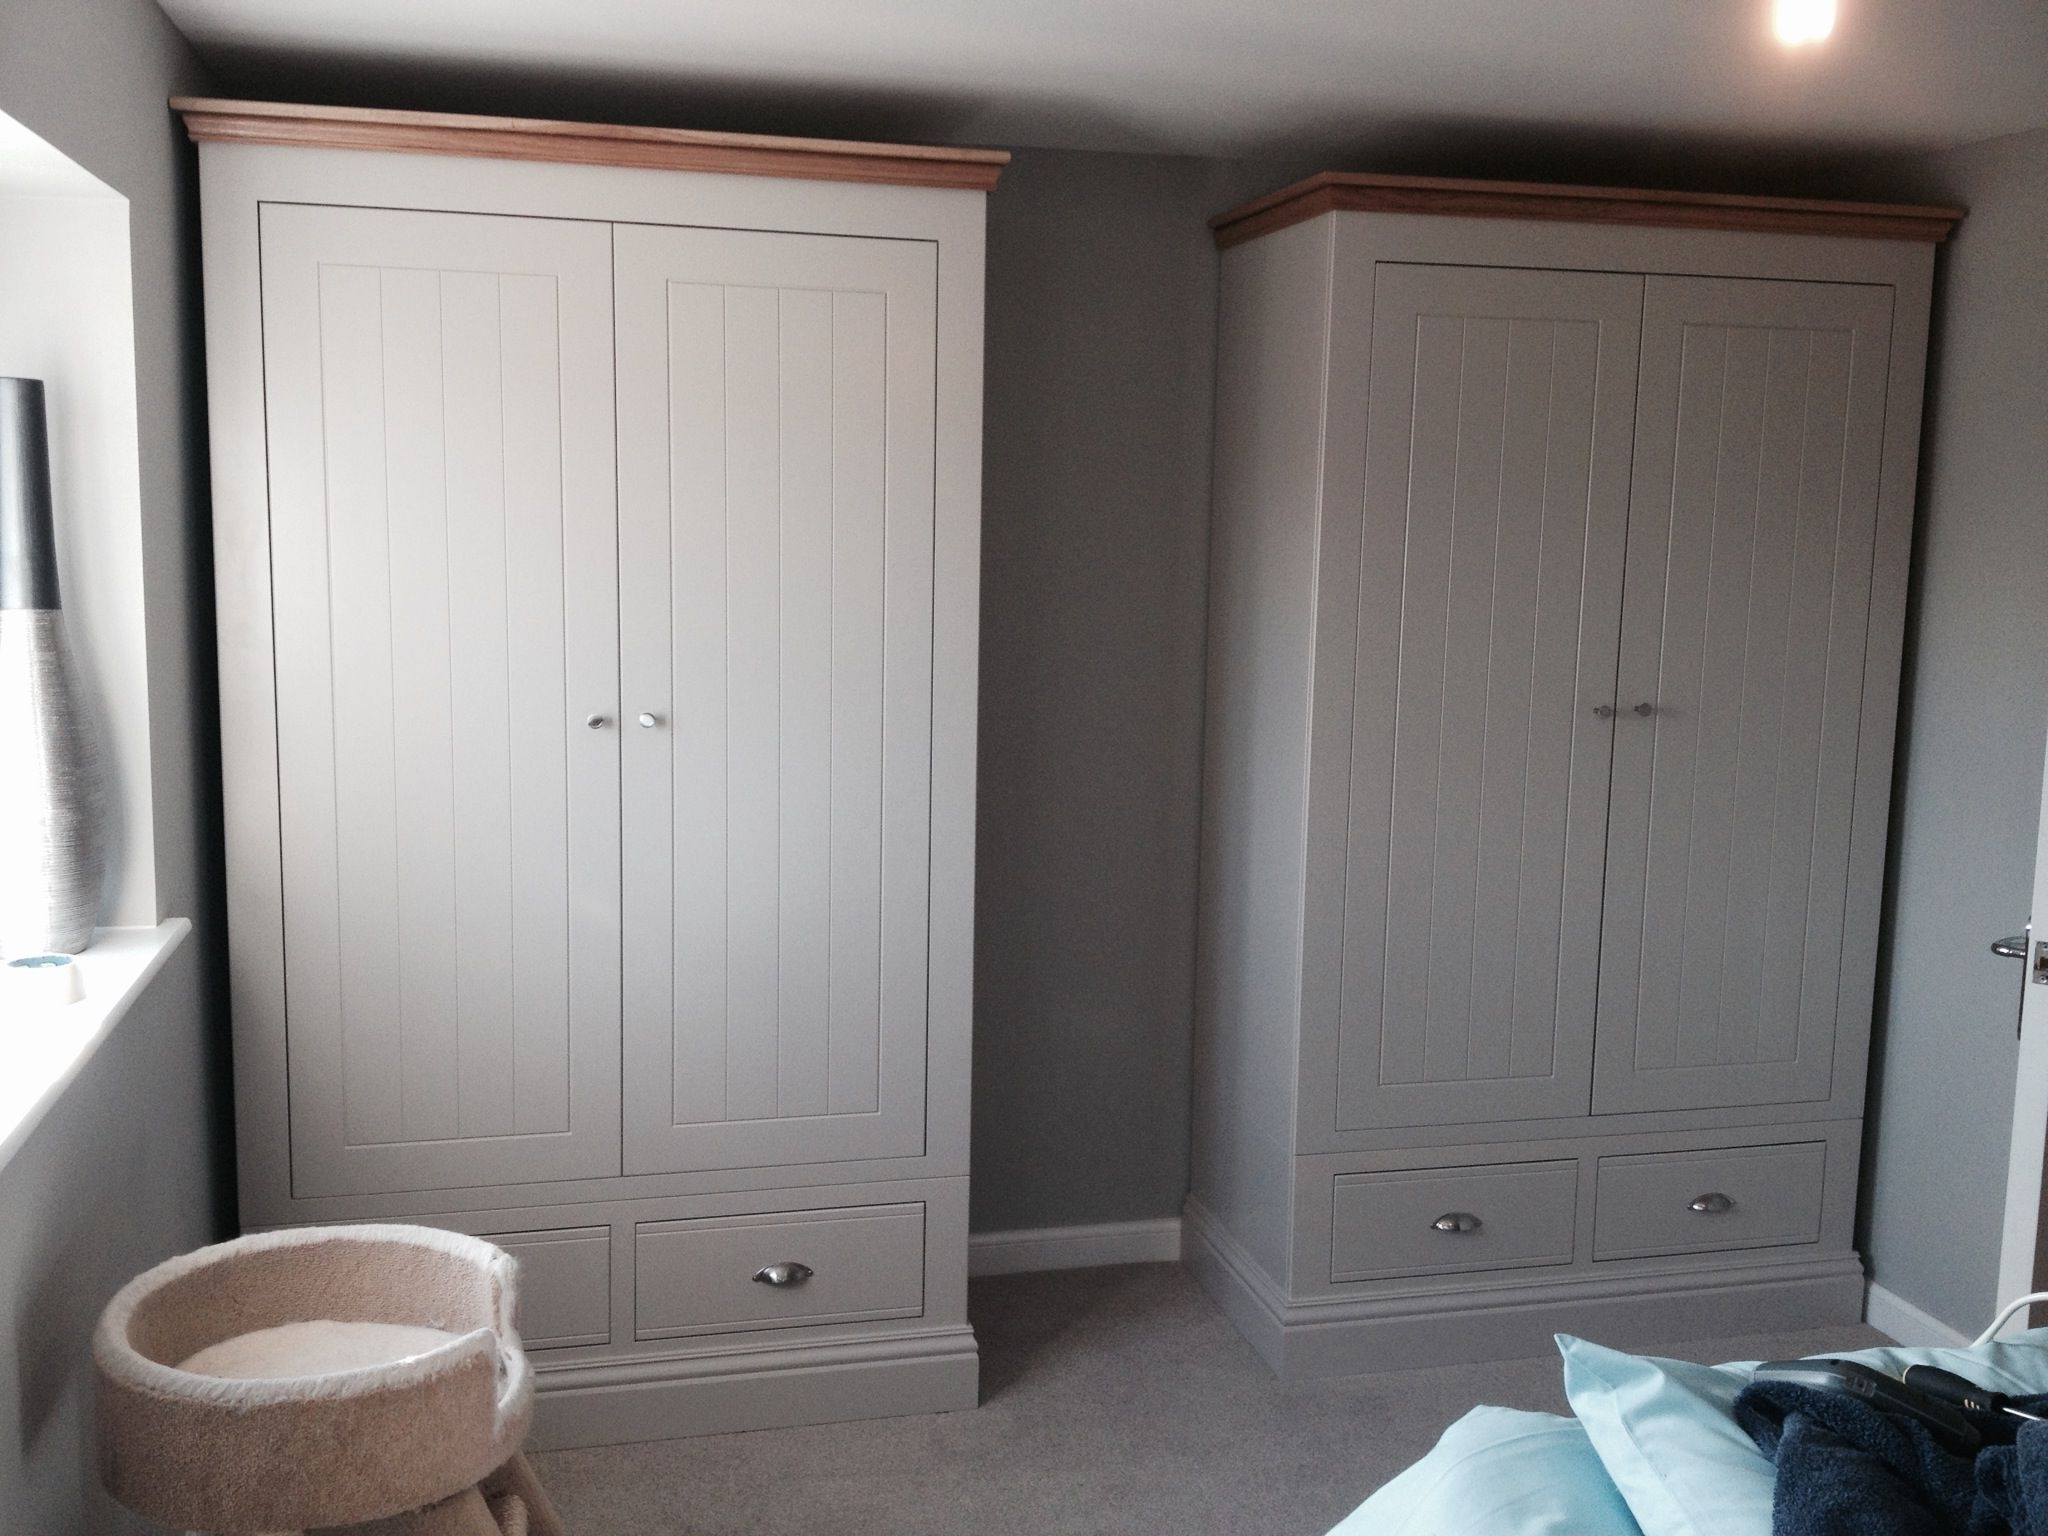 Trendy Tall Wardrobes Inside Two Of Our New England Extra Tall Wardrobes Installed Today (View 14 of 15)